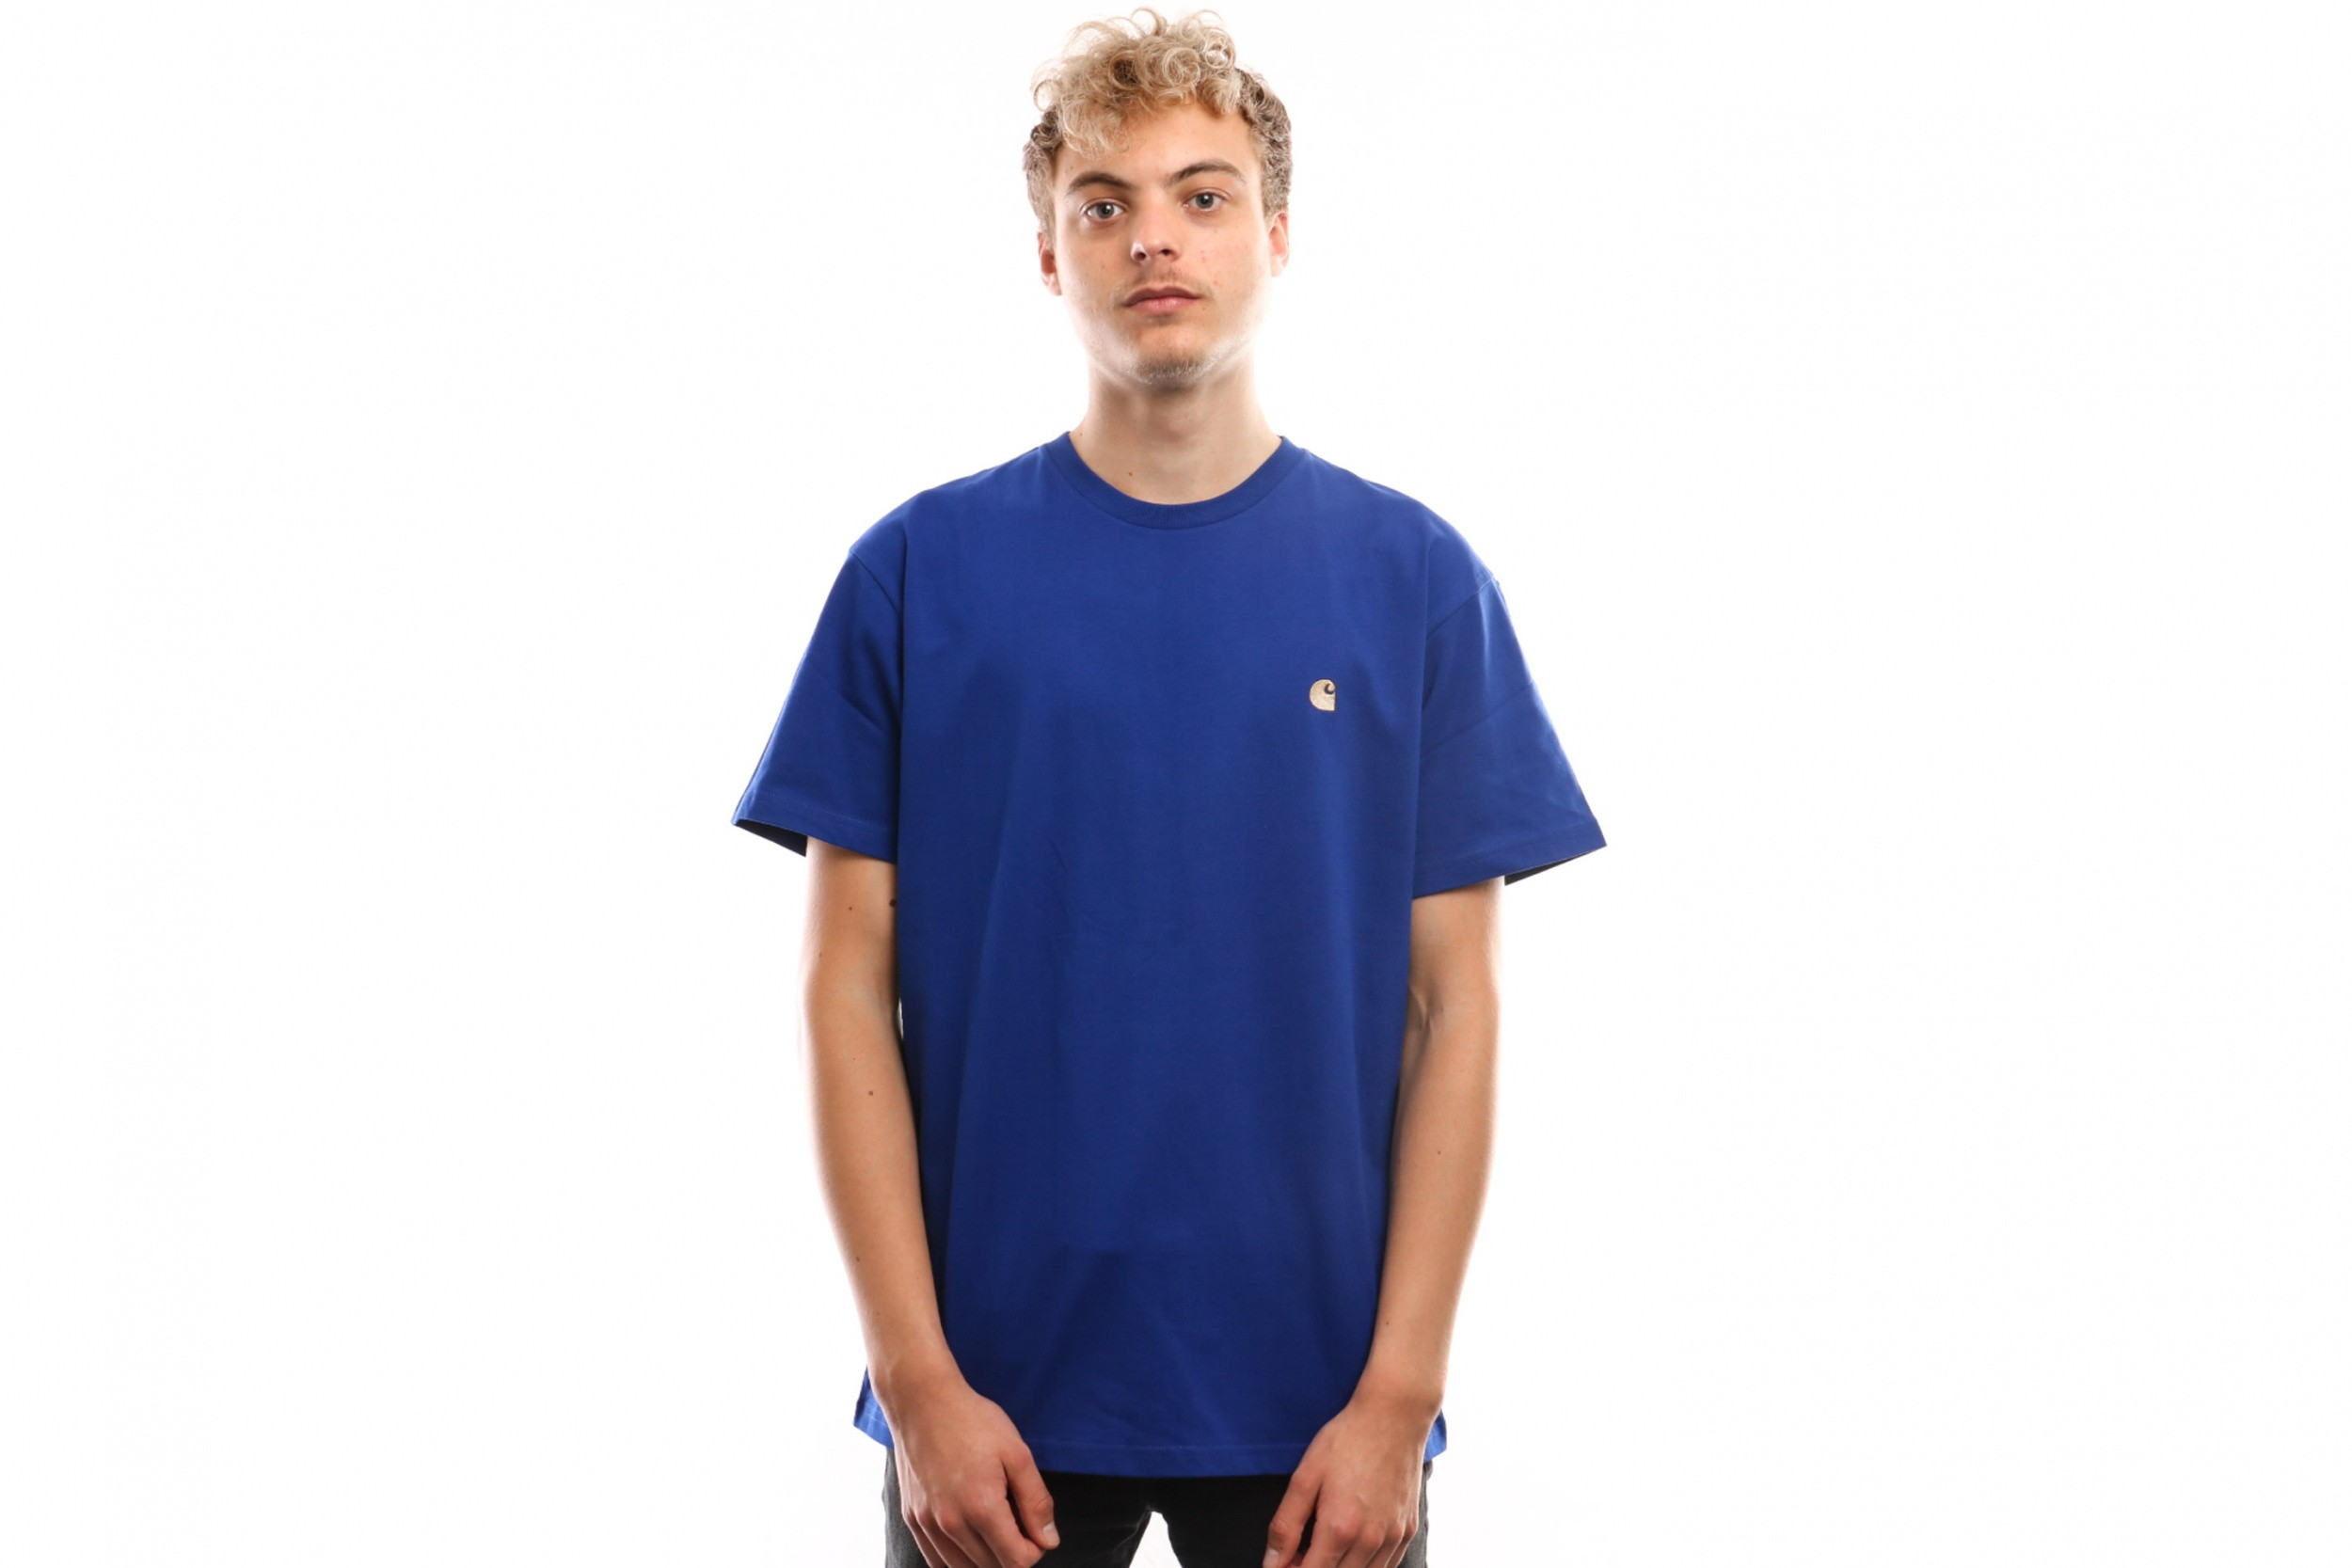 Afbeelding van Carhartt Wip S/S Chase T-Shirt I026391 T Shirt Thunder Blue / Gold